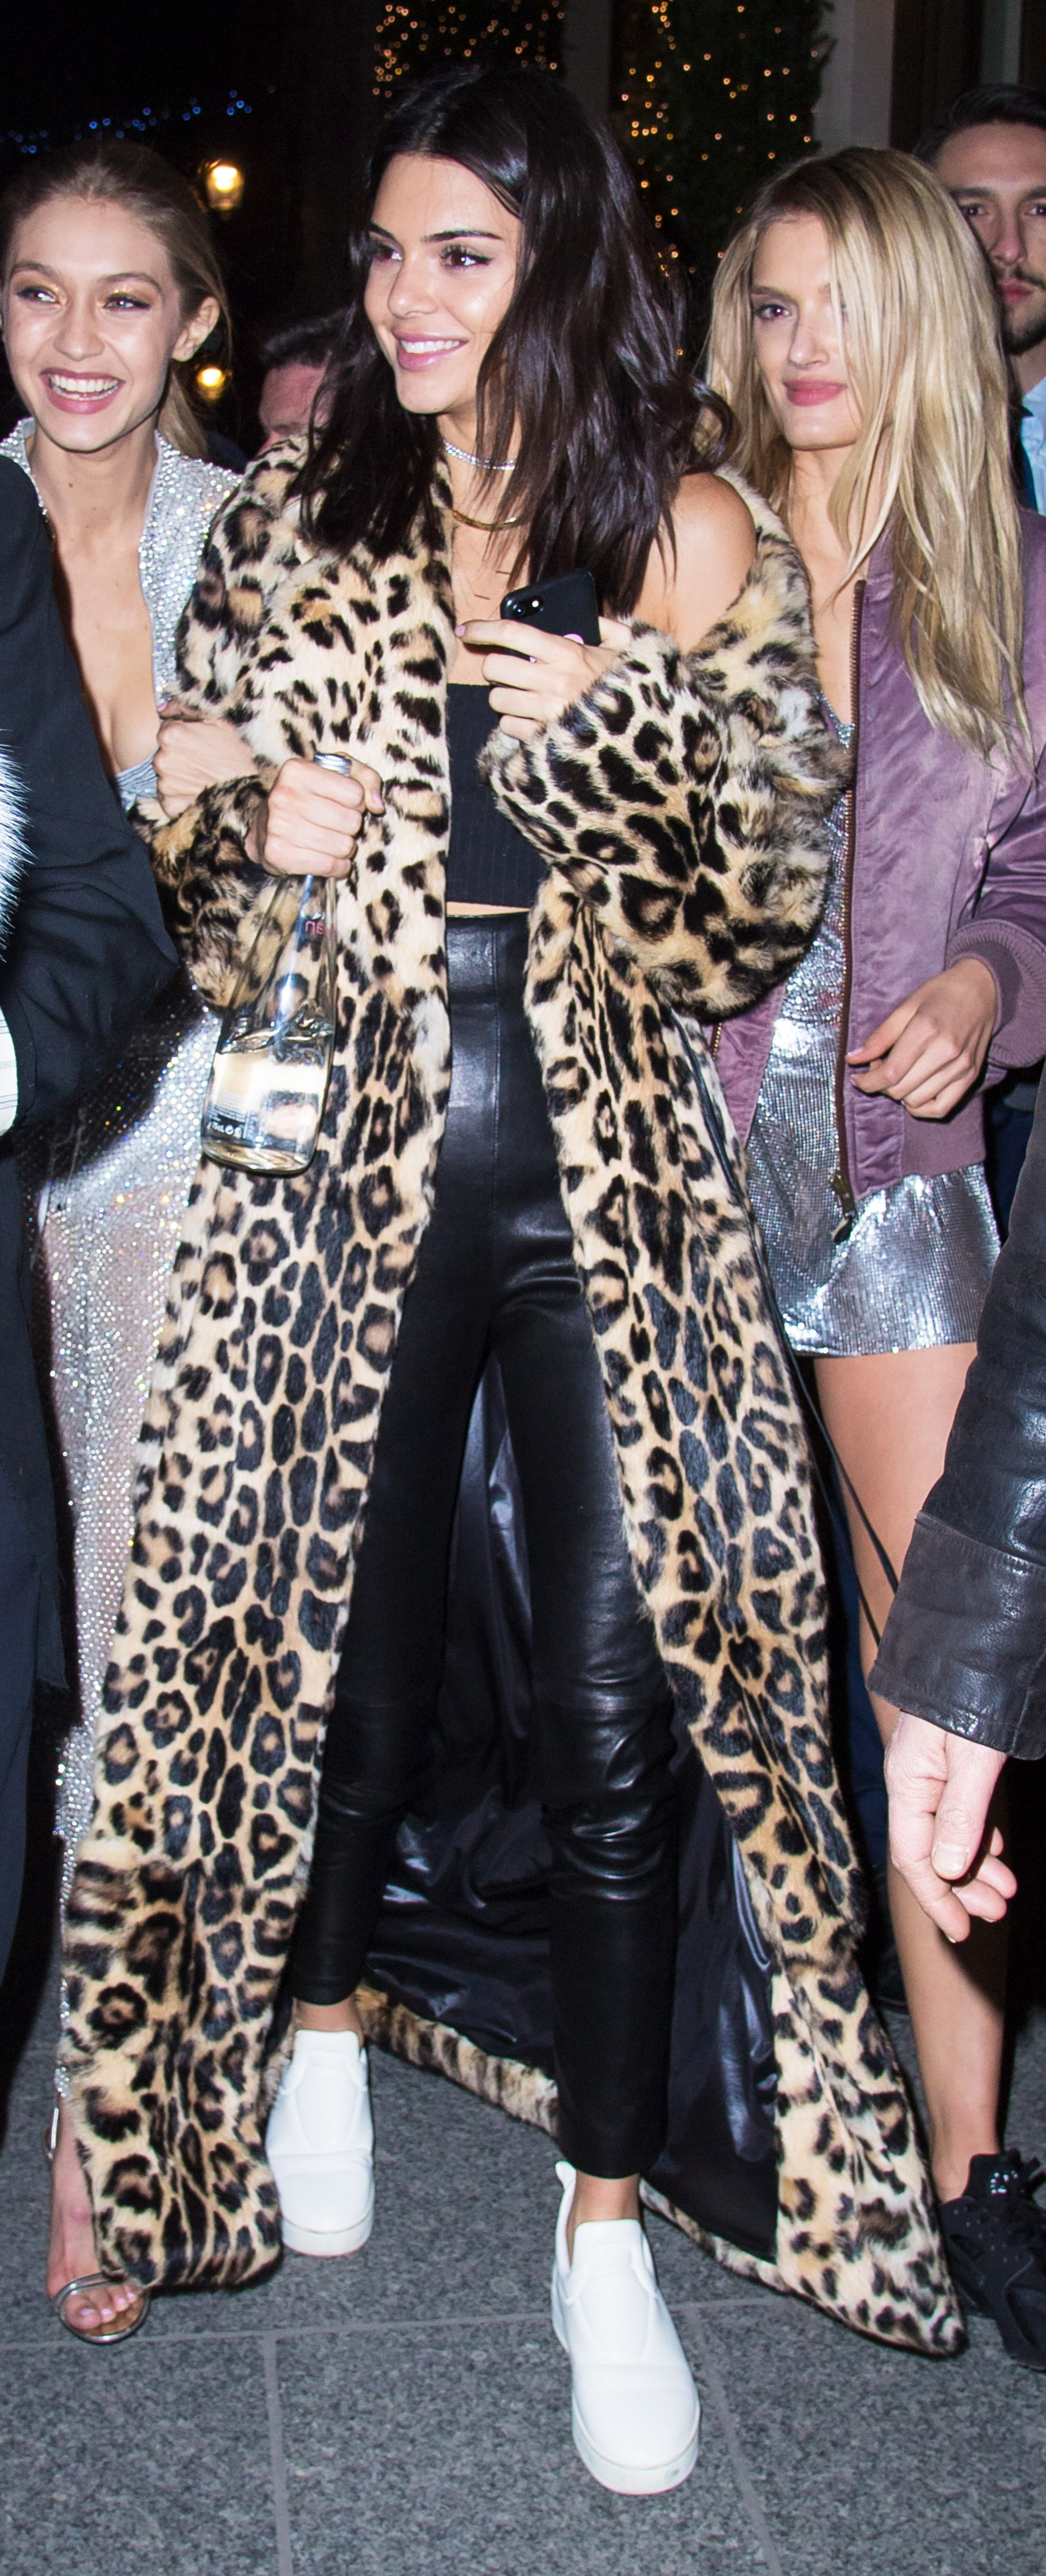 b2f7077c55cf If there's one bold way to top off a winter look, it's with this iconic Kate  Moss item. See here how Kendall Jenner styled one in Paris.